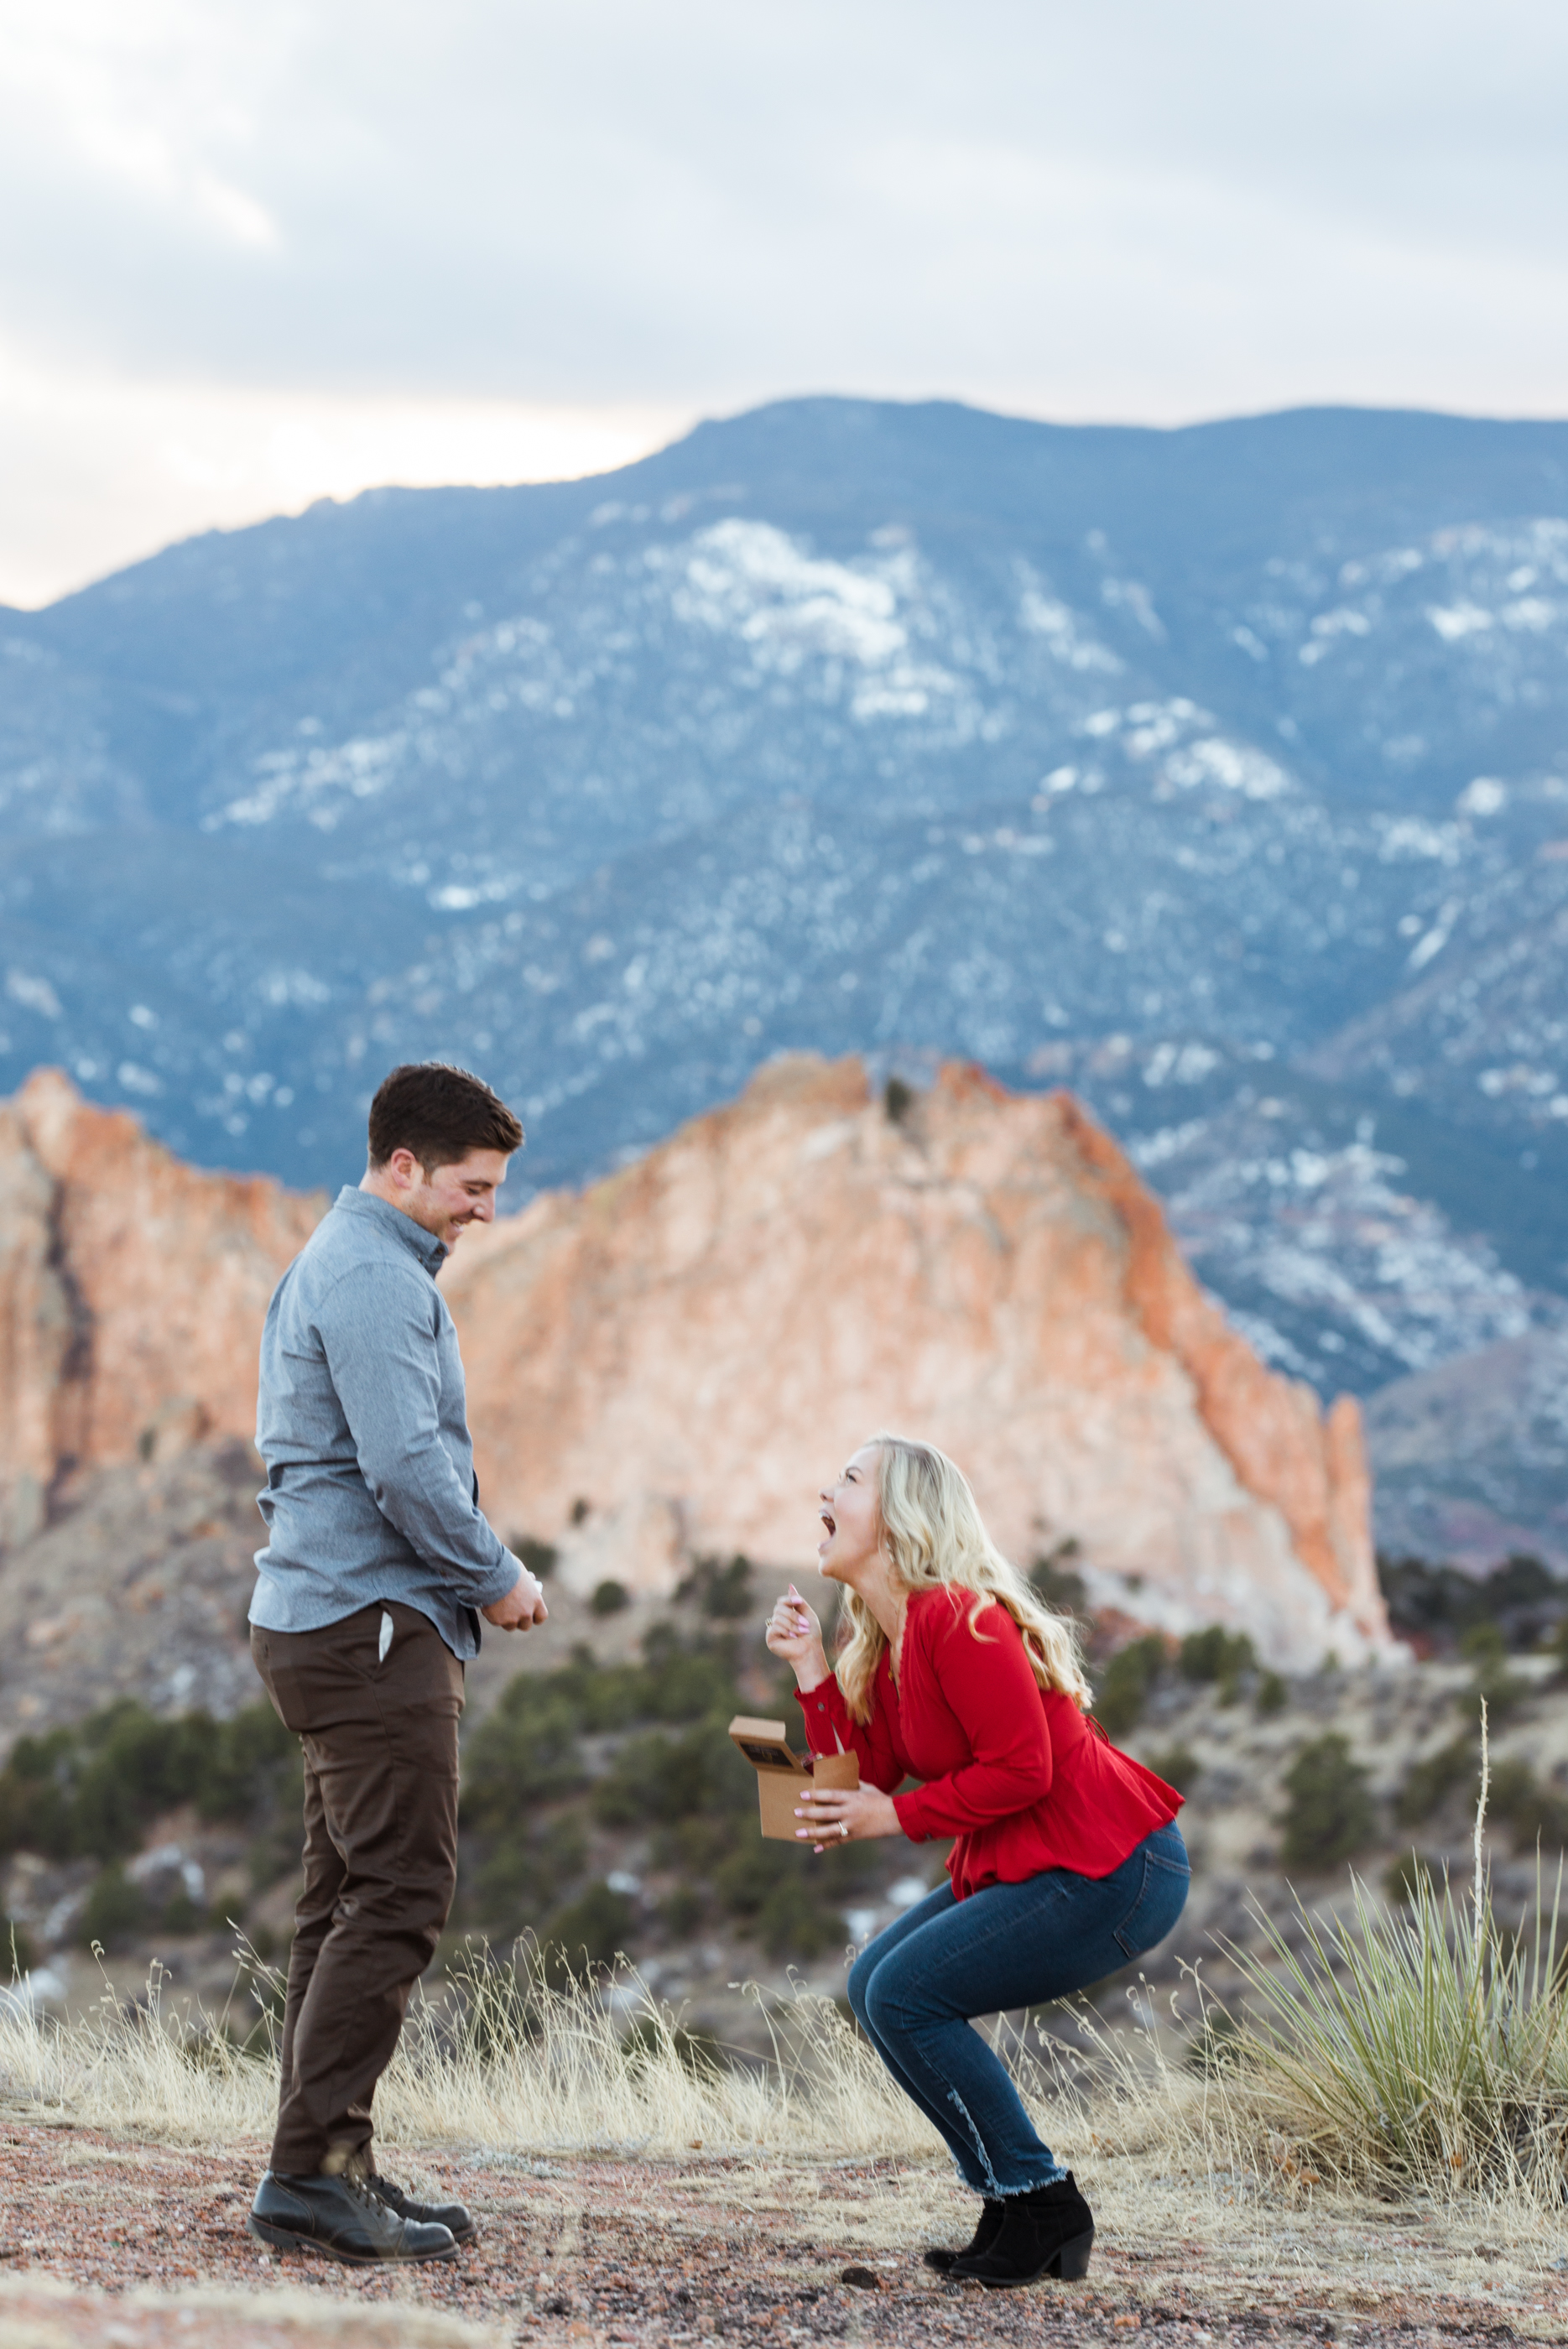 Check out this surprise Colorado Springs proposal photoshoot. She was so surprised!